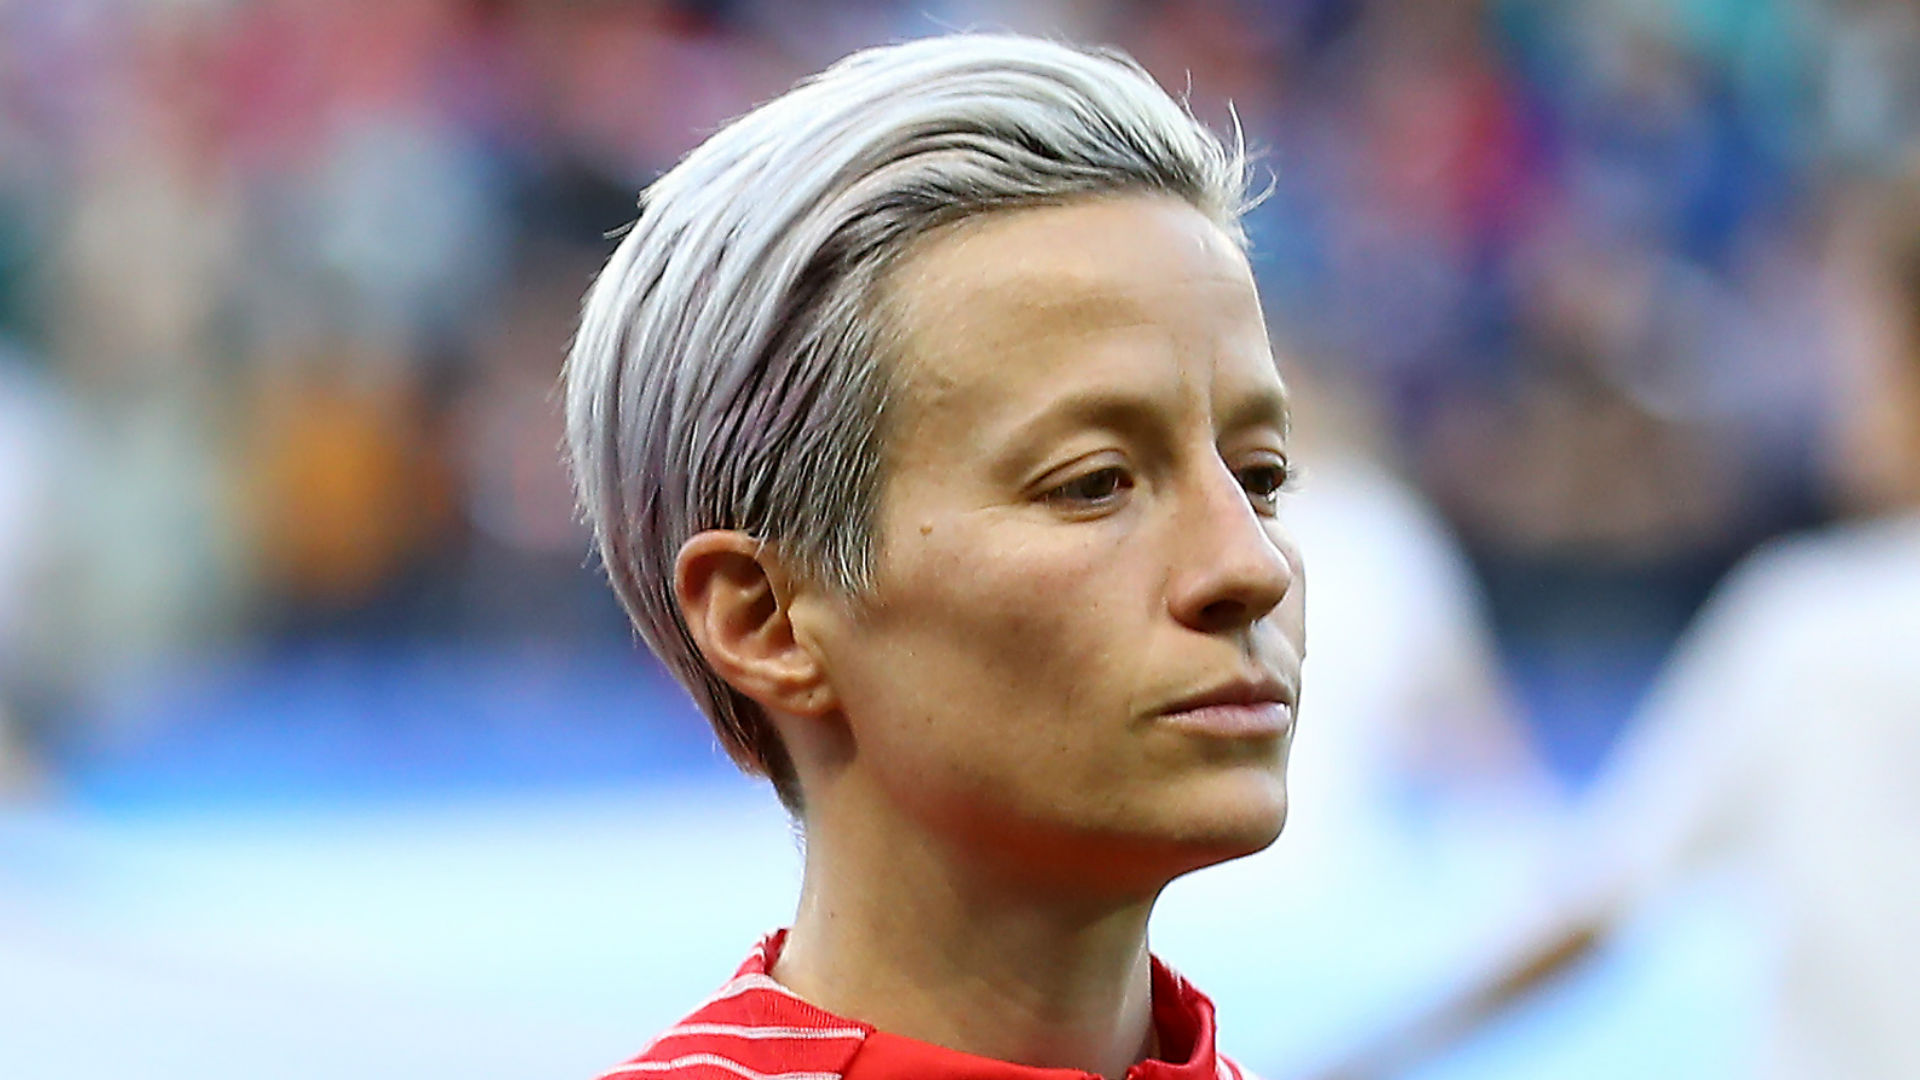 President Trump says US soccer star wrong to protest during anthem